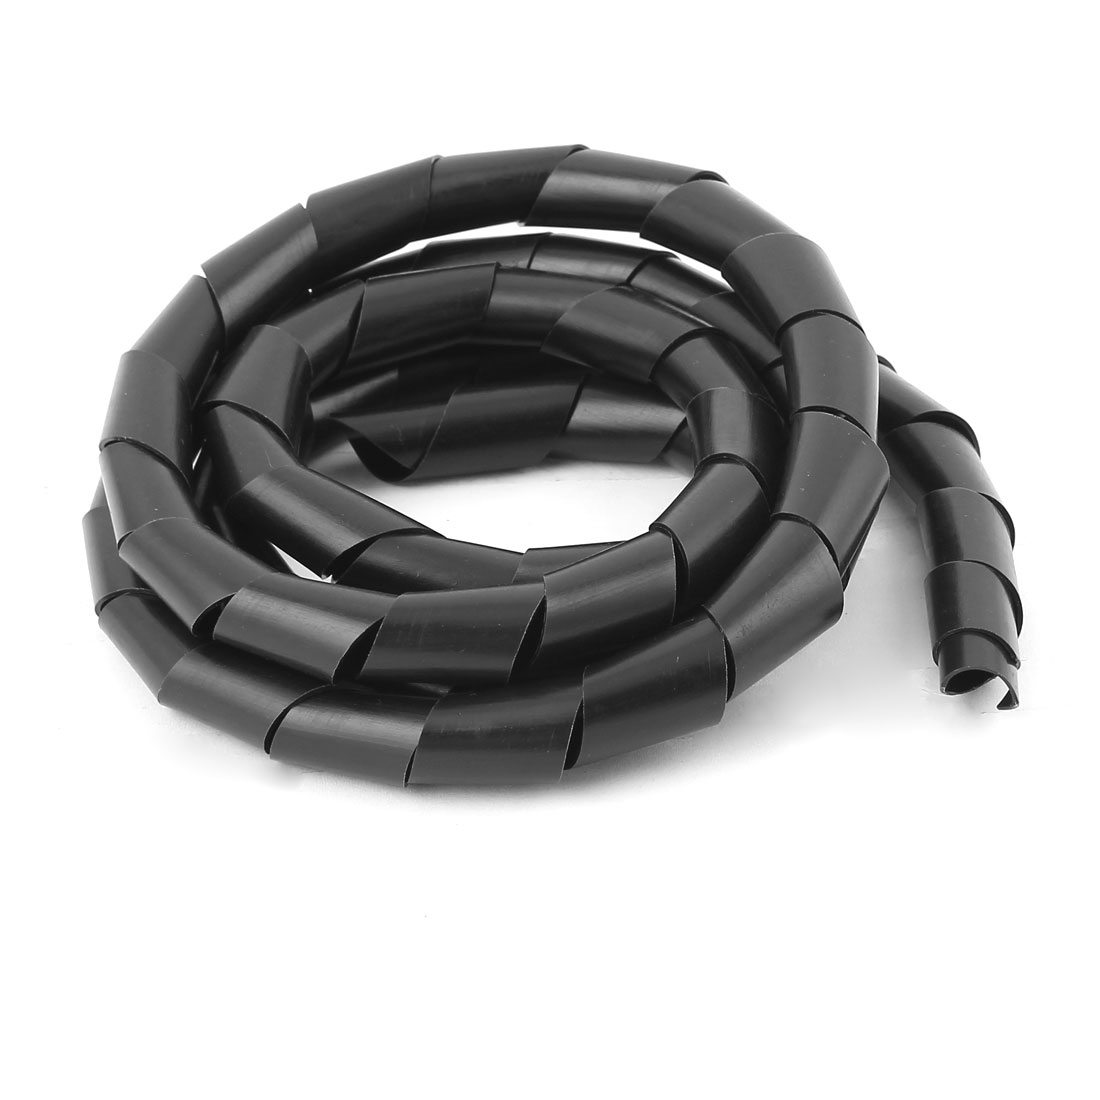 1.8M Long 14mm Dia Black Spiral Wrapping Band Cable Manager